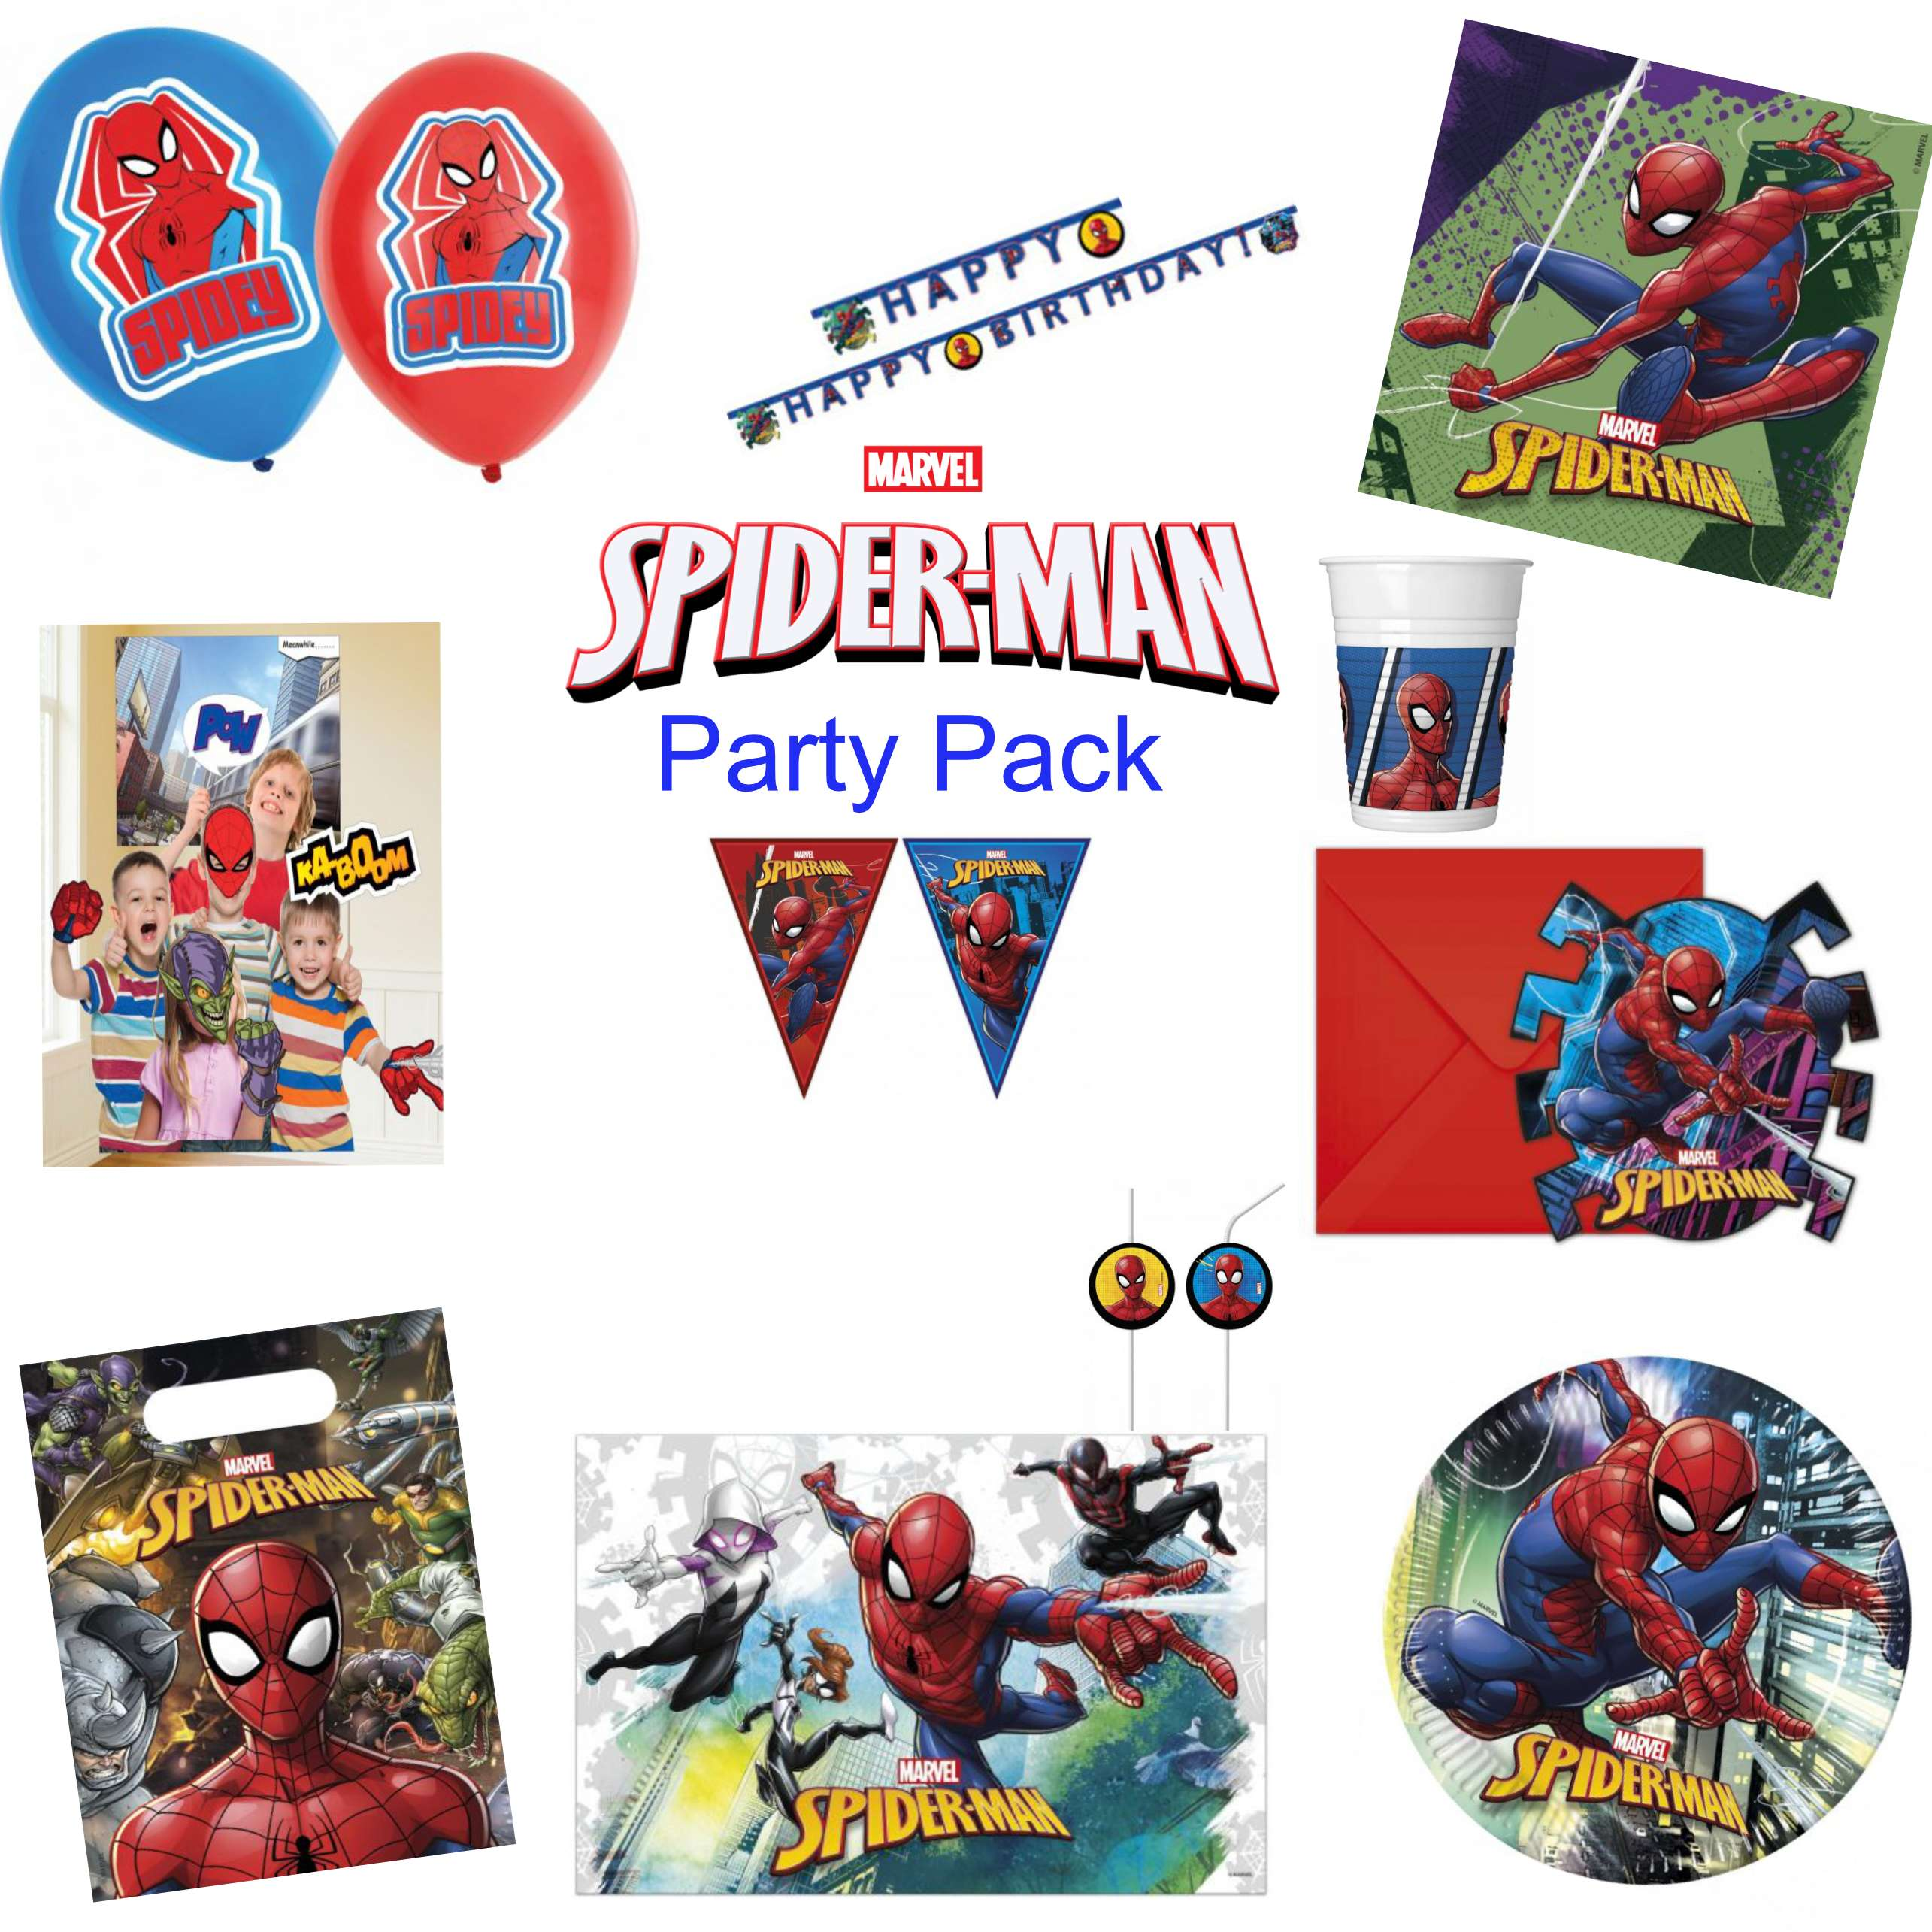 Spiderman Team Up Party Pack